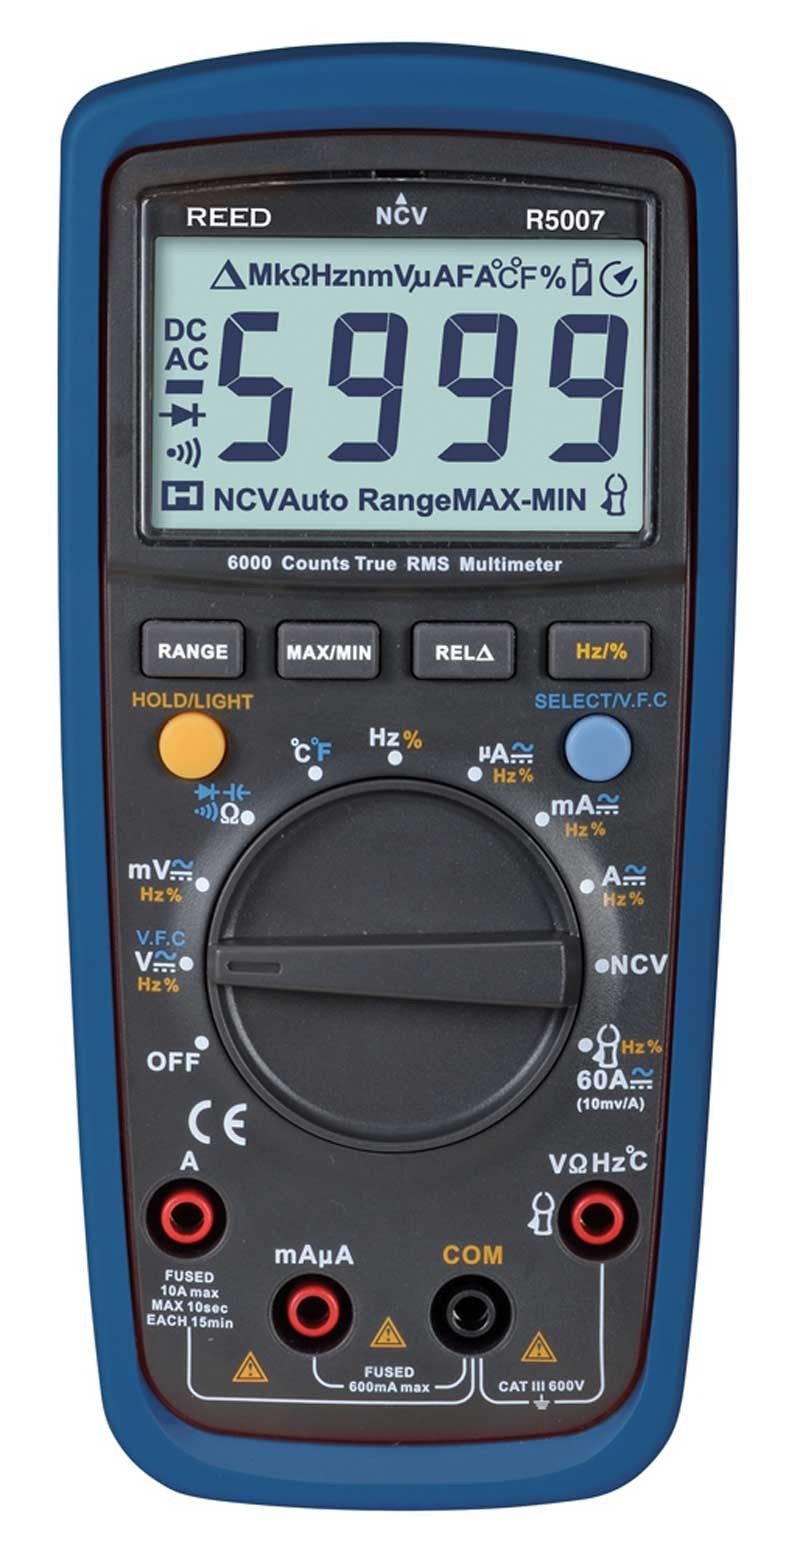 REED R5007 TRMS Digital Multimeter with Non-Contact Voltage Detector-